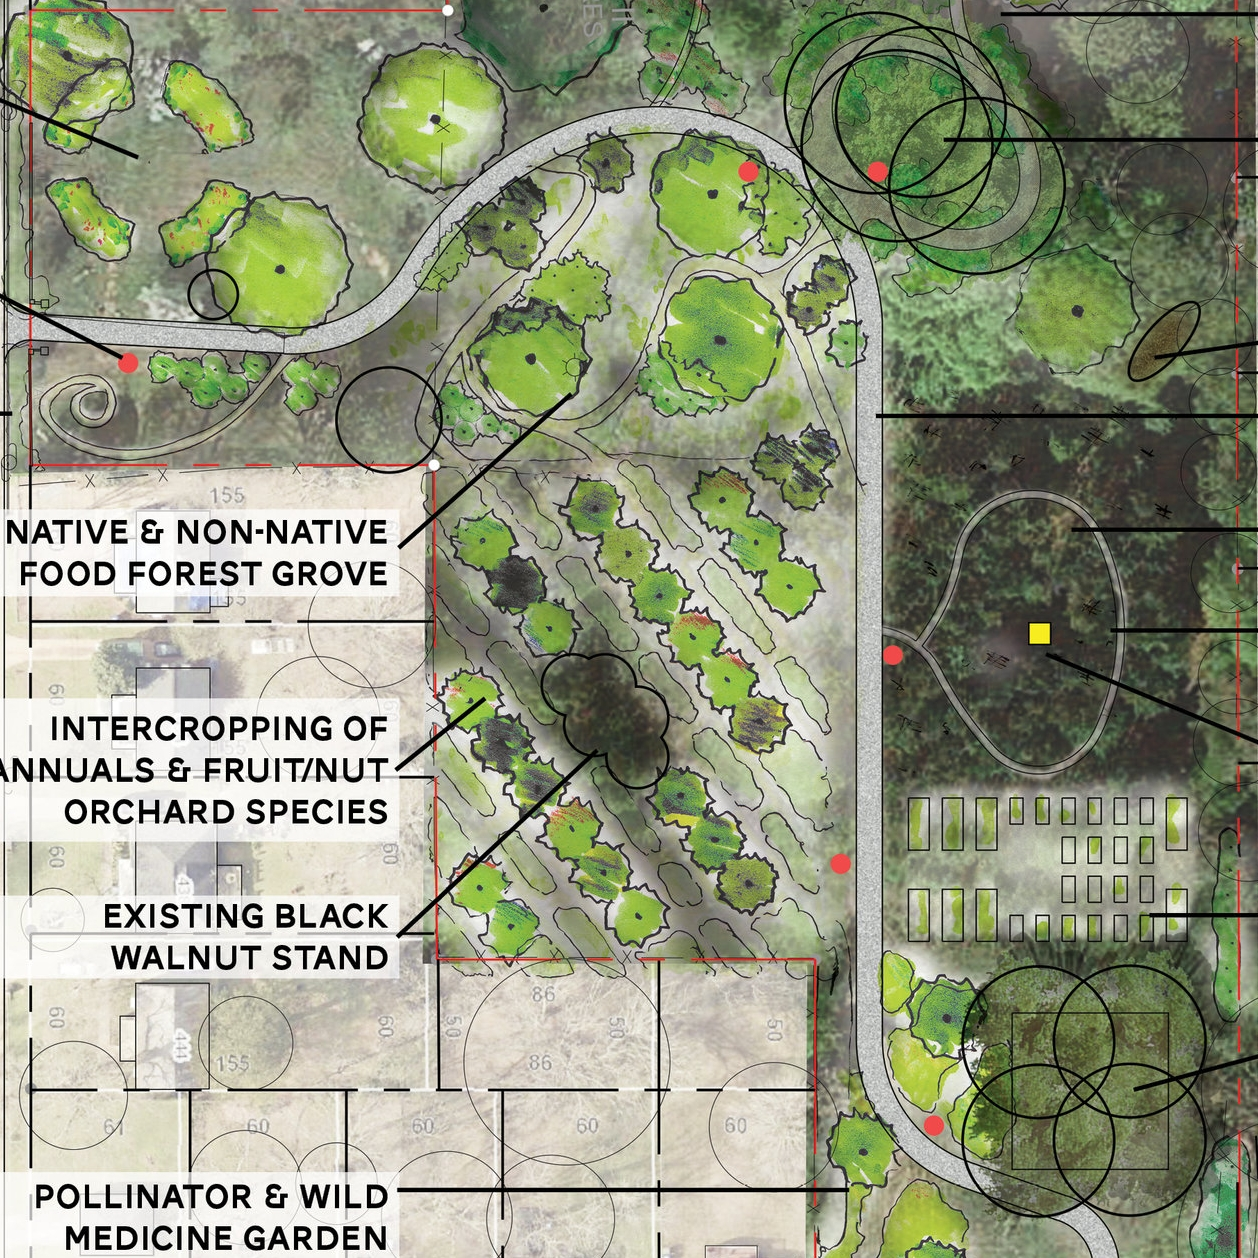 Urban Farms & Food Forests